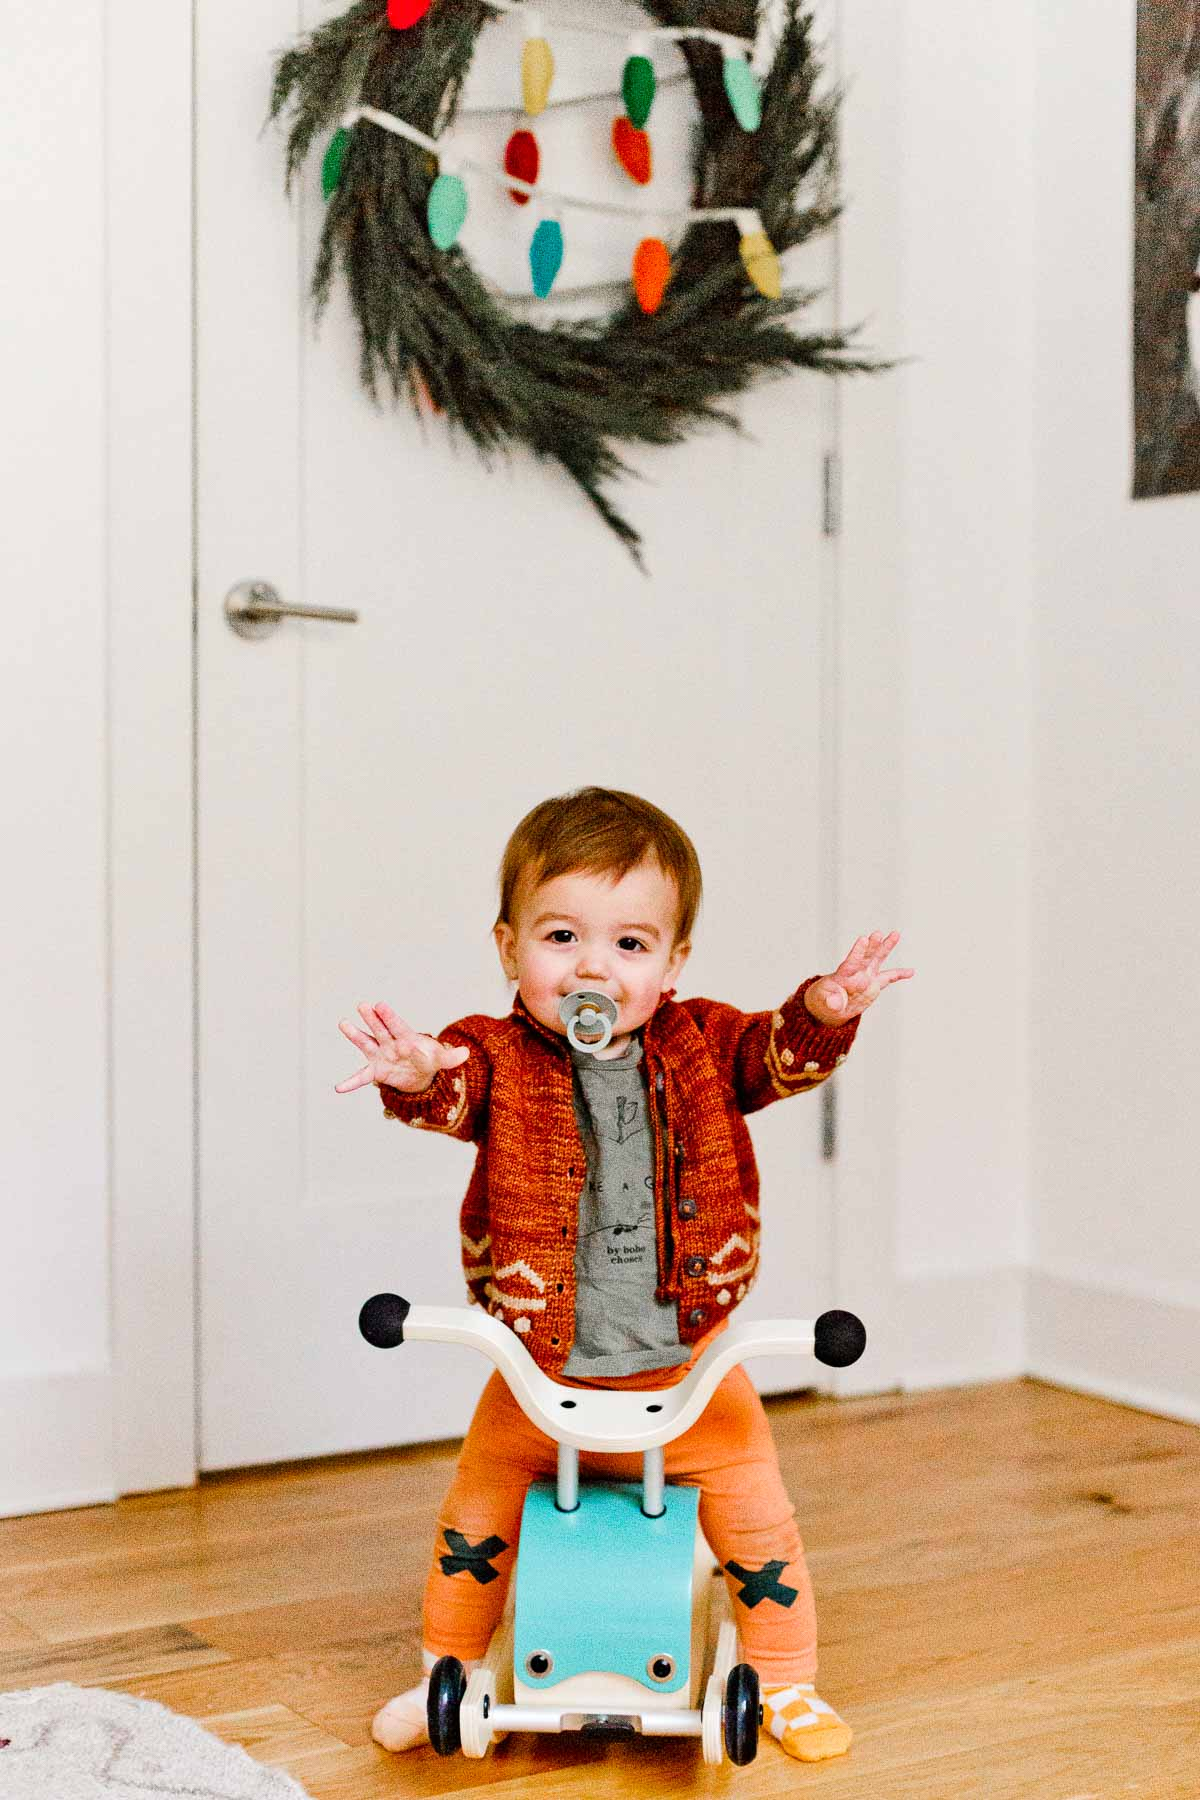 Toddler on big shaped ride on toy - holiday gift ideas.